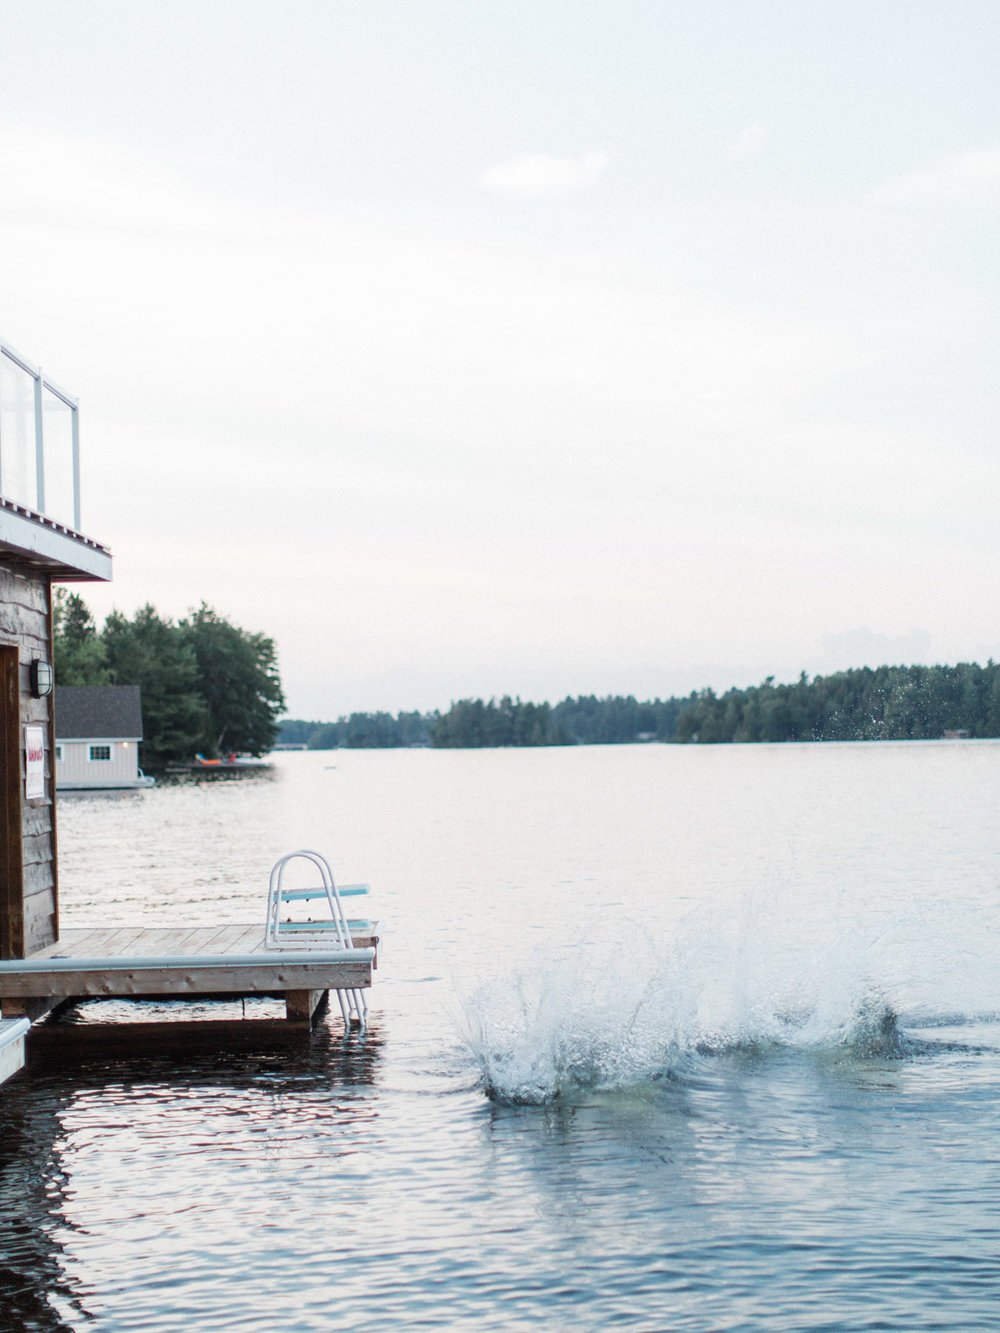 muskoka-wedding-photographer-adventurous-couples-engagement-session-lake-113.jpg